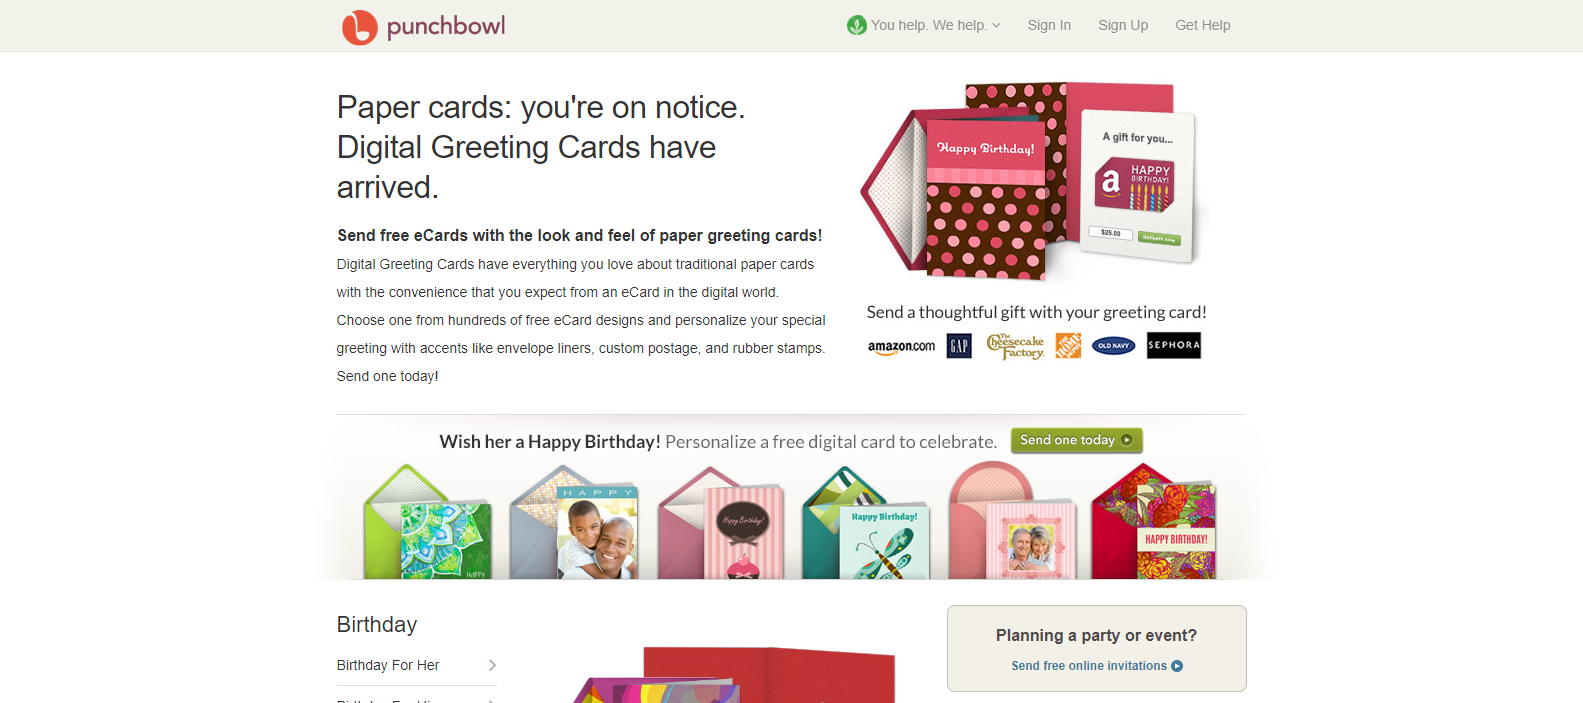 Punchbowls ECard Introduction Includes Movements For Opening The Envelope And Card Punchbowl Offers A Beautiful Cluster Of Free Ecards That Resemble